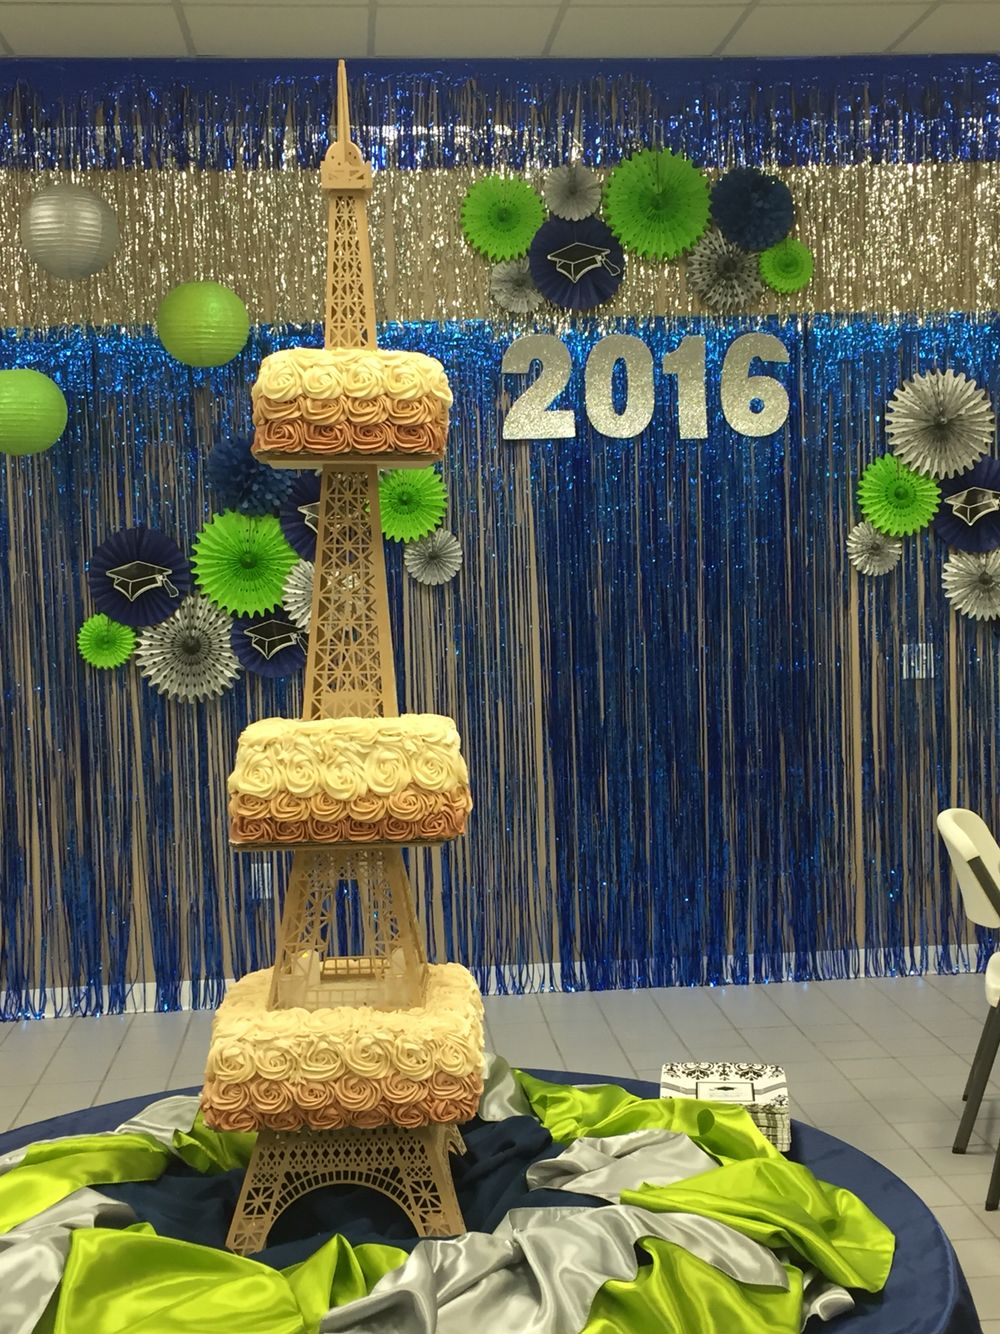 5 12 foot tall eiffel tower rosette cake by grandfinale